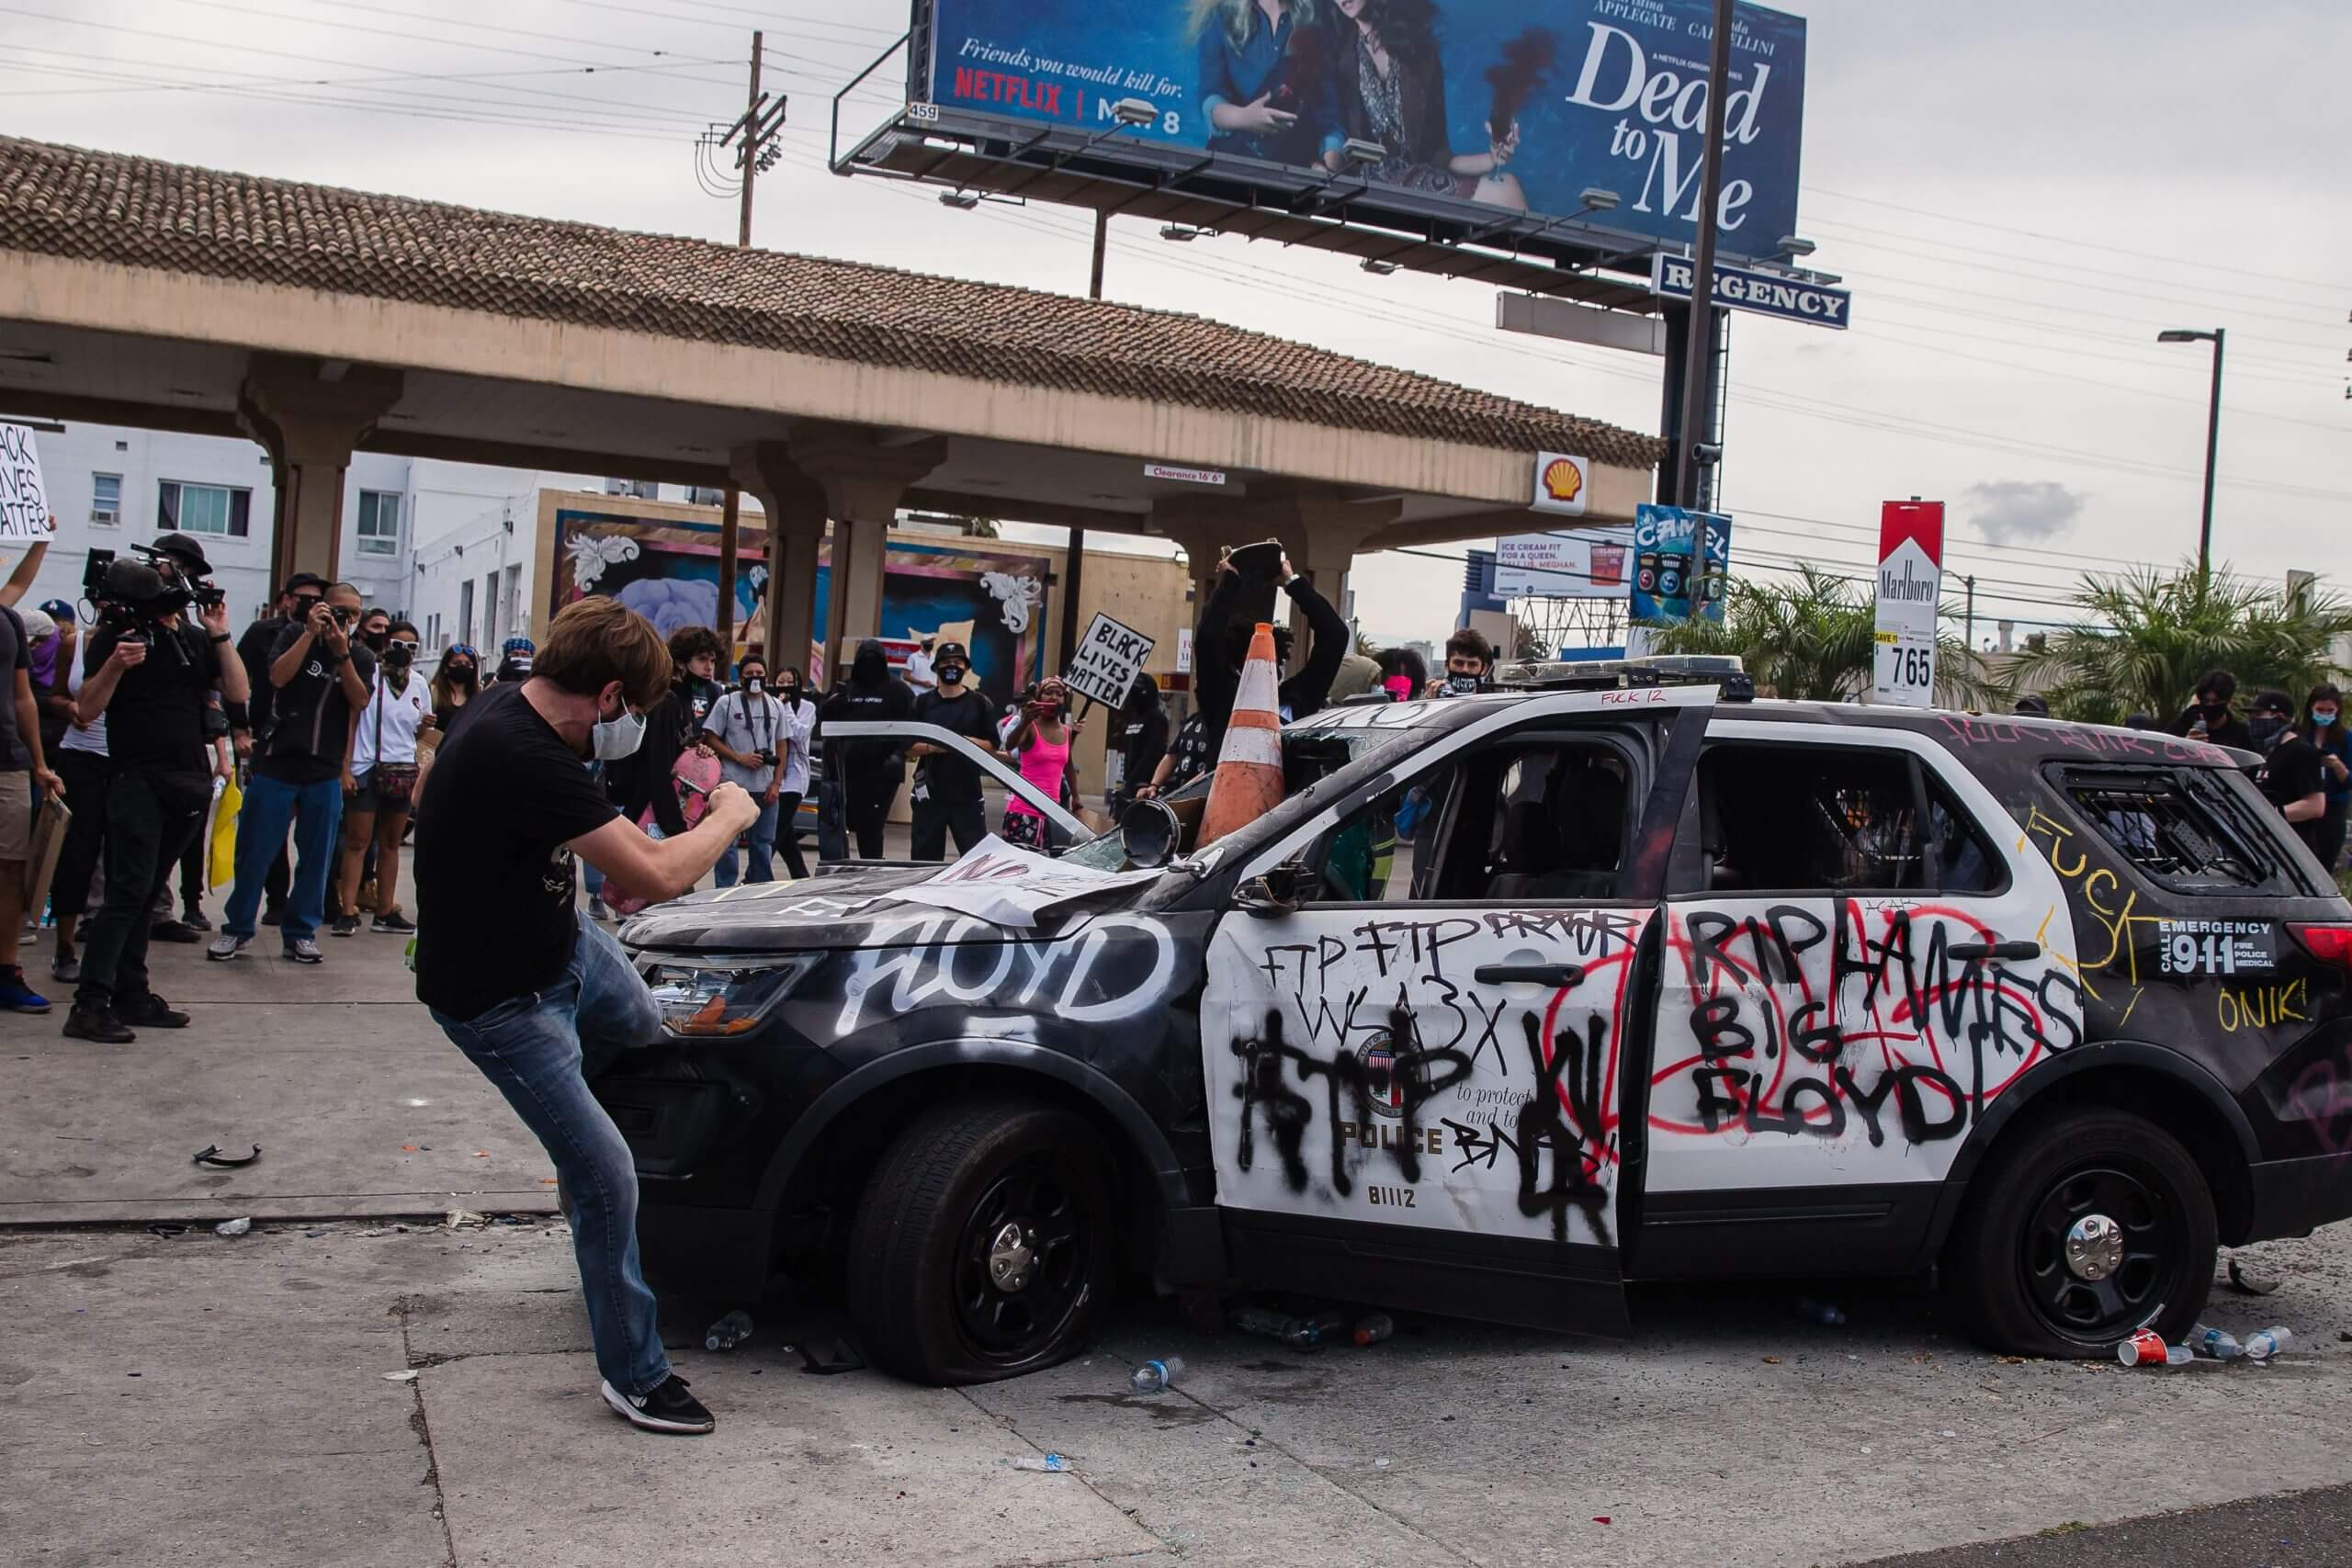 Protesters deface a police vehicle